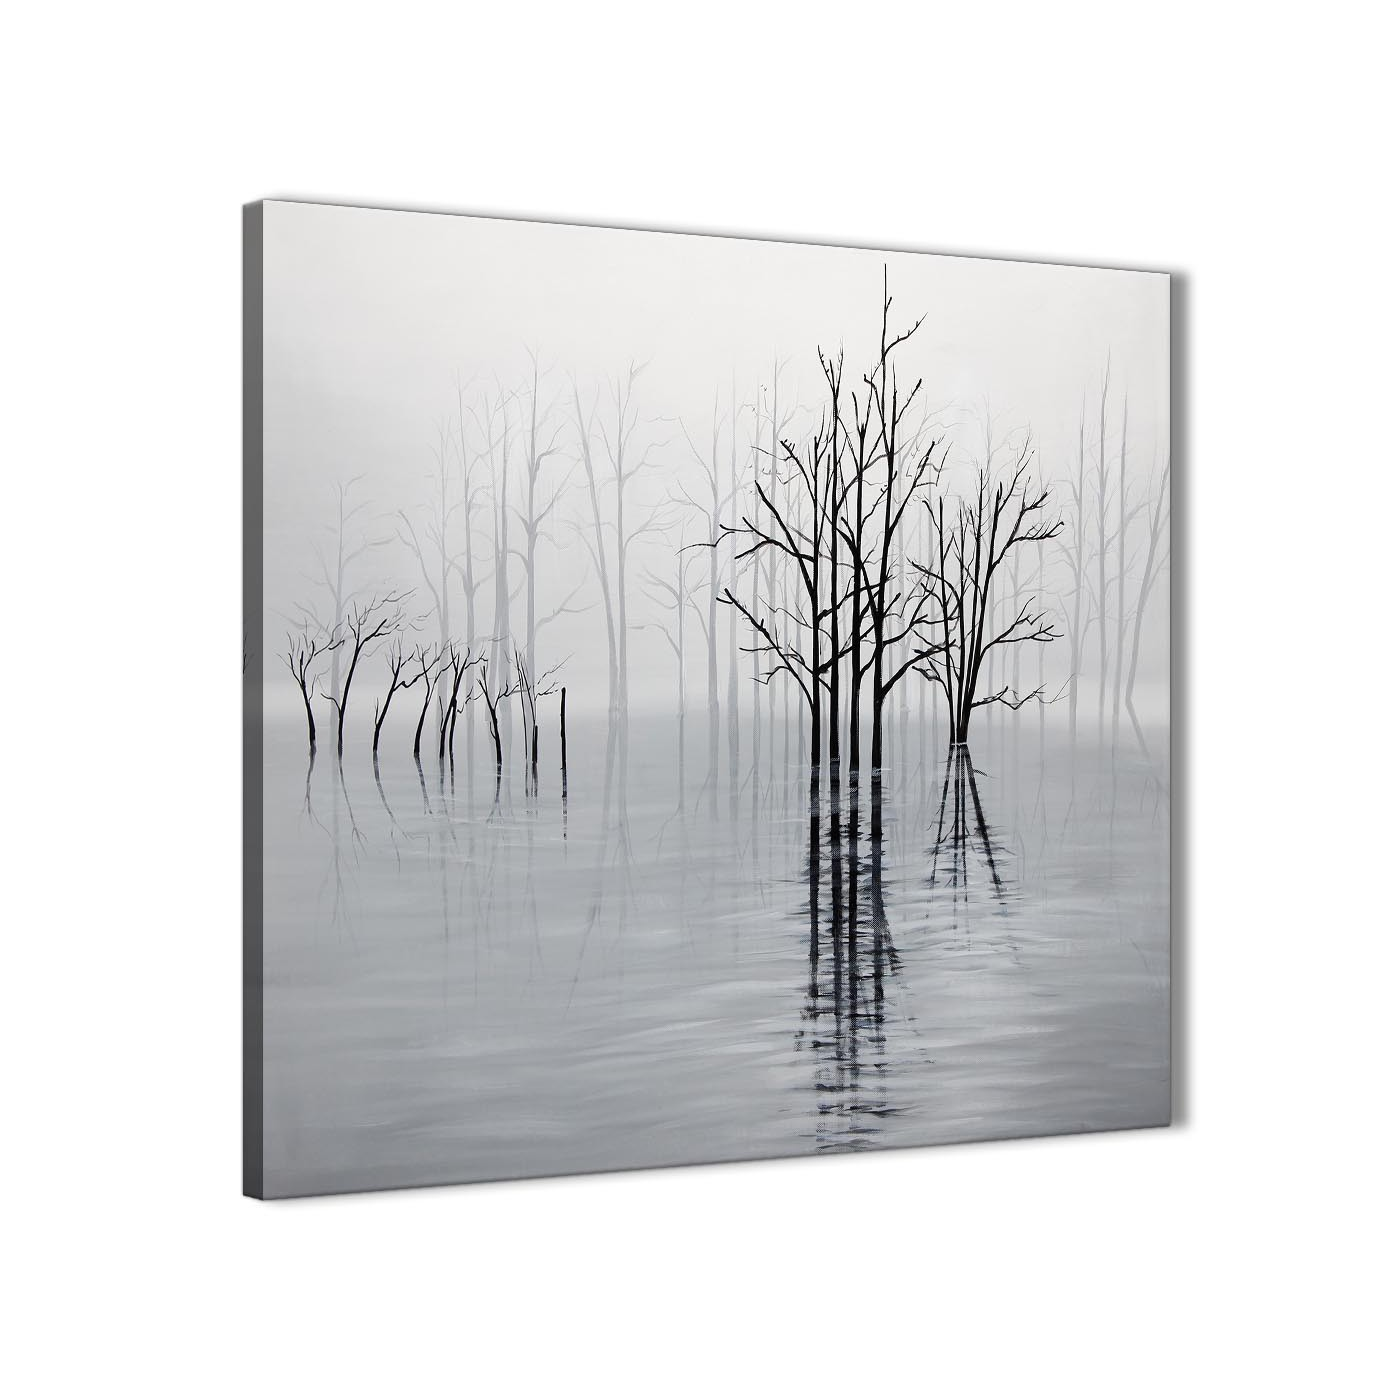 Modern Black White Grey Tree Landscape Painting Dining Room Canvas Pictures  Decorations 1s416l   79cm Square Display Gallery Item 1 ...